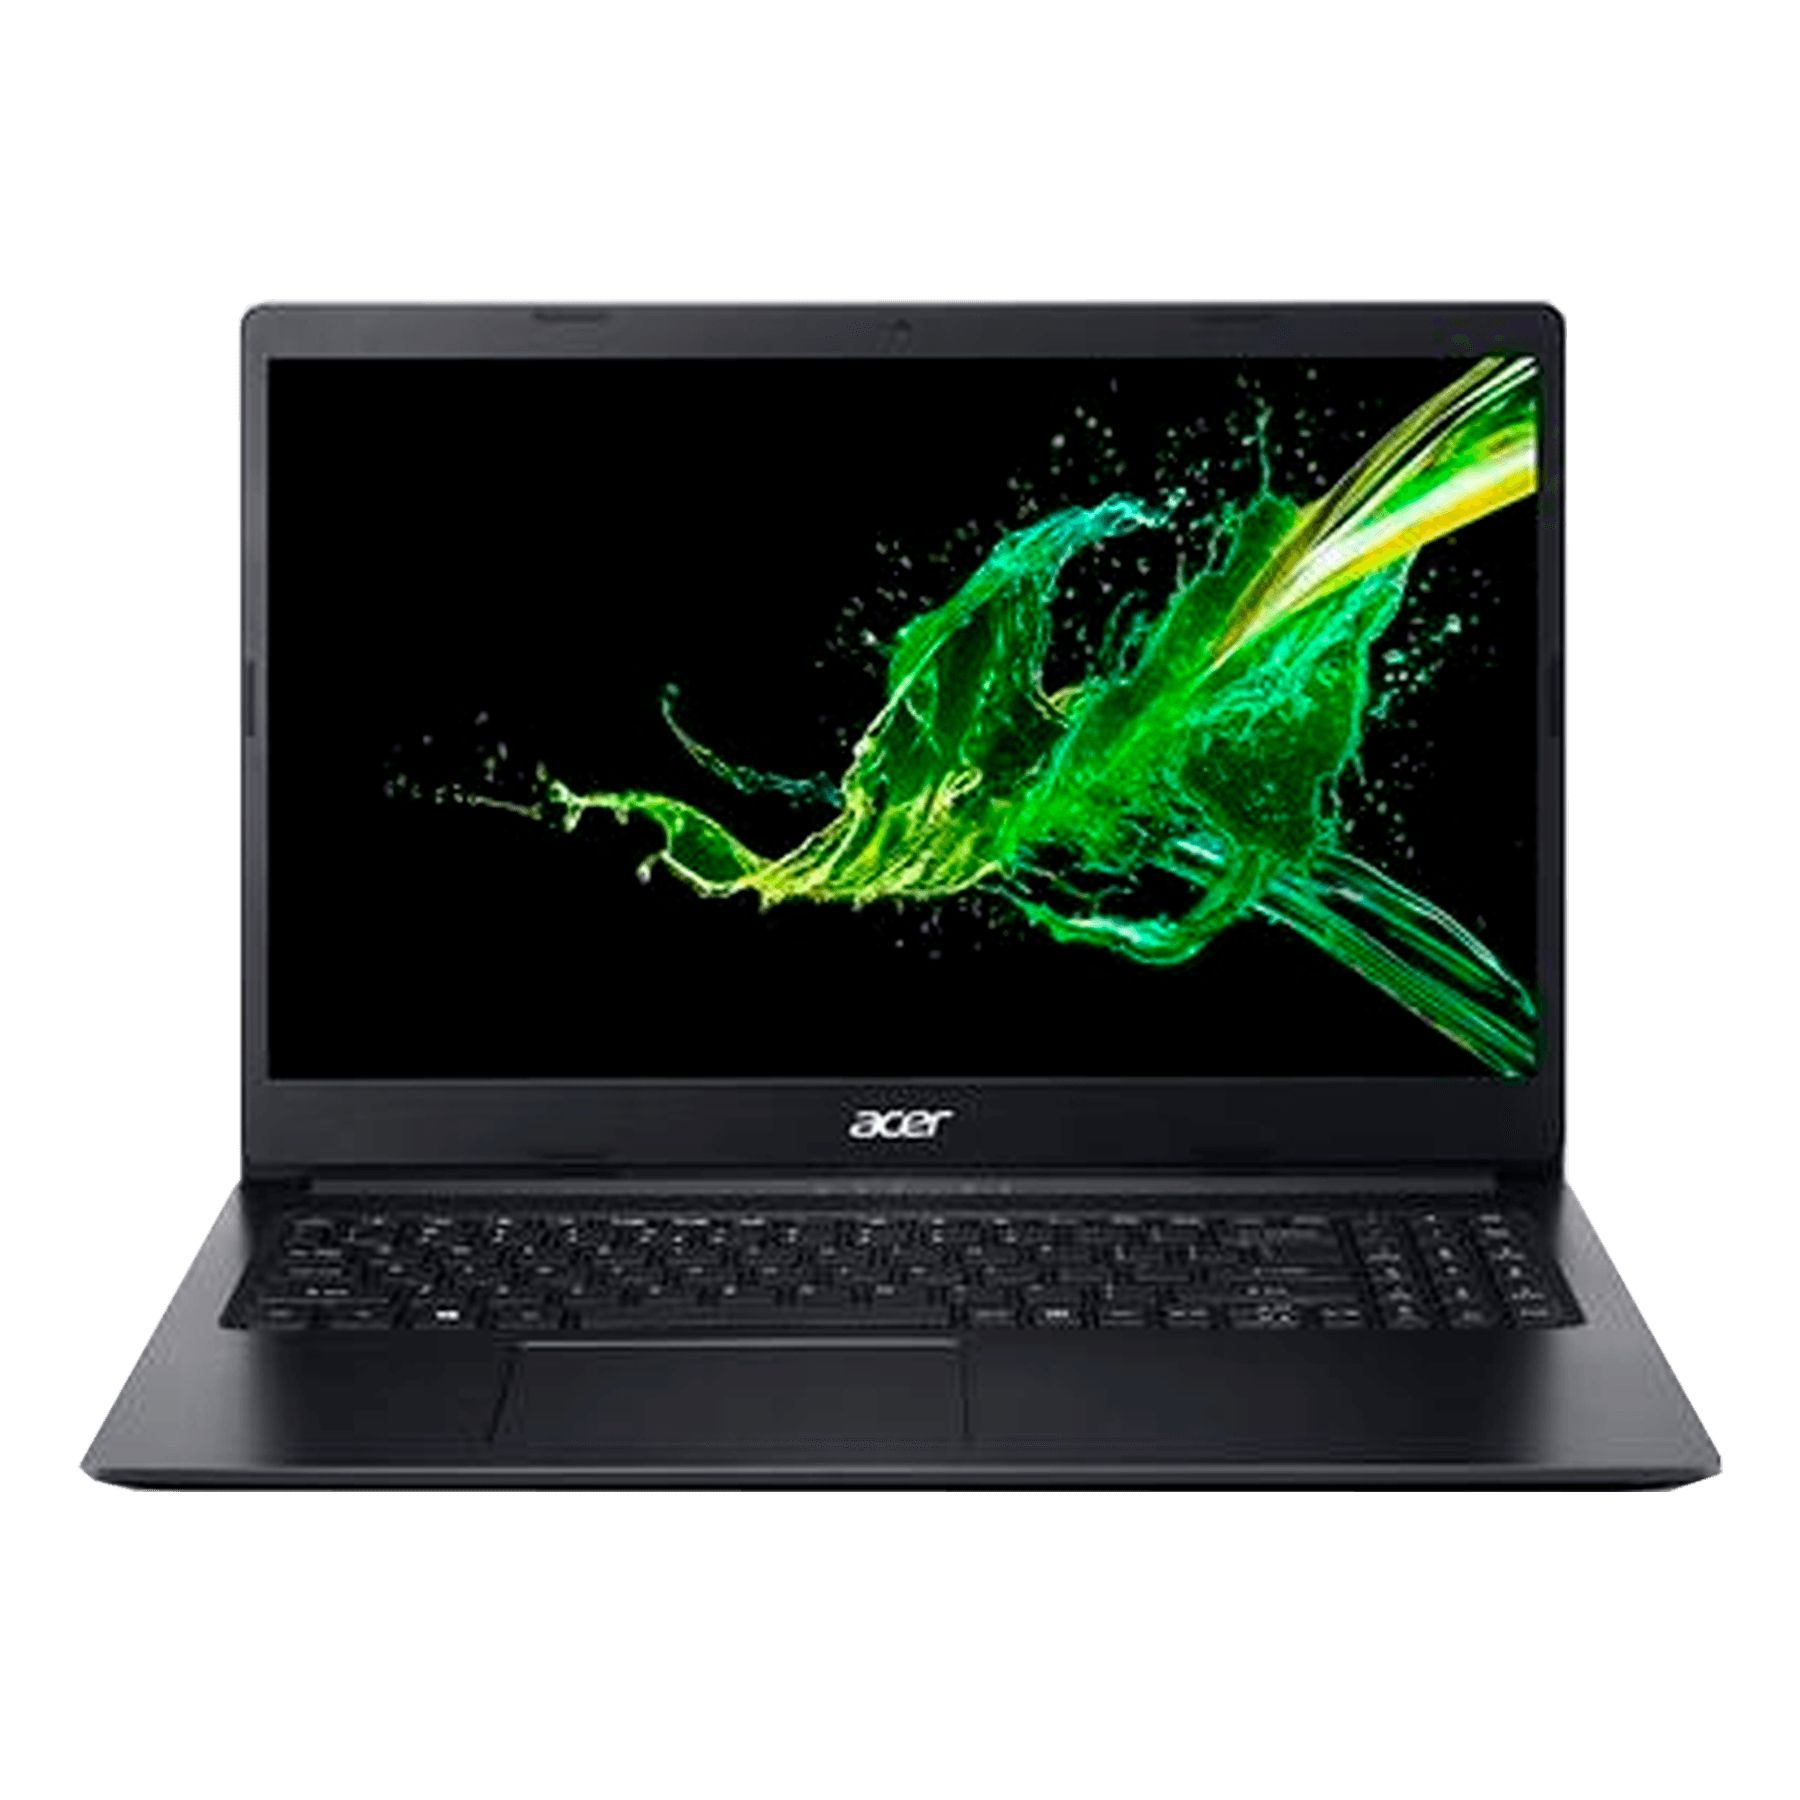 Notebook Acer Aspire 3 Intel Core i5-1035G1, 8GB, SSD 480GB, Windows 10 Pro, 15.6´, Gray - A315-56-56-480W8